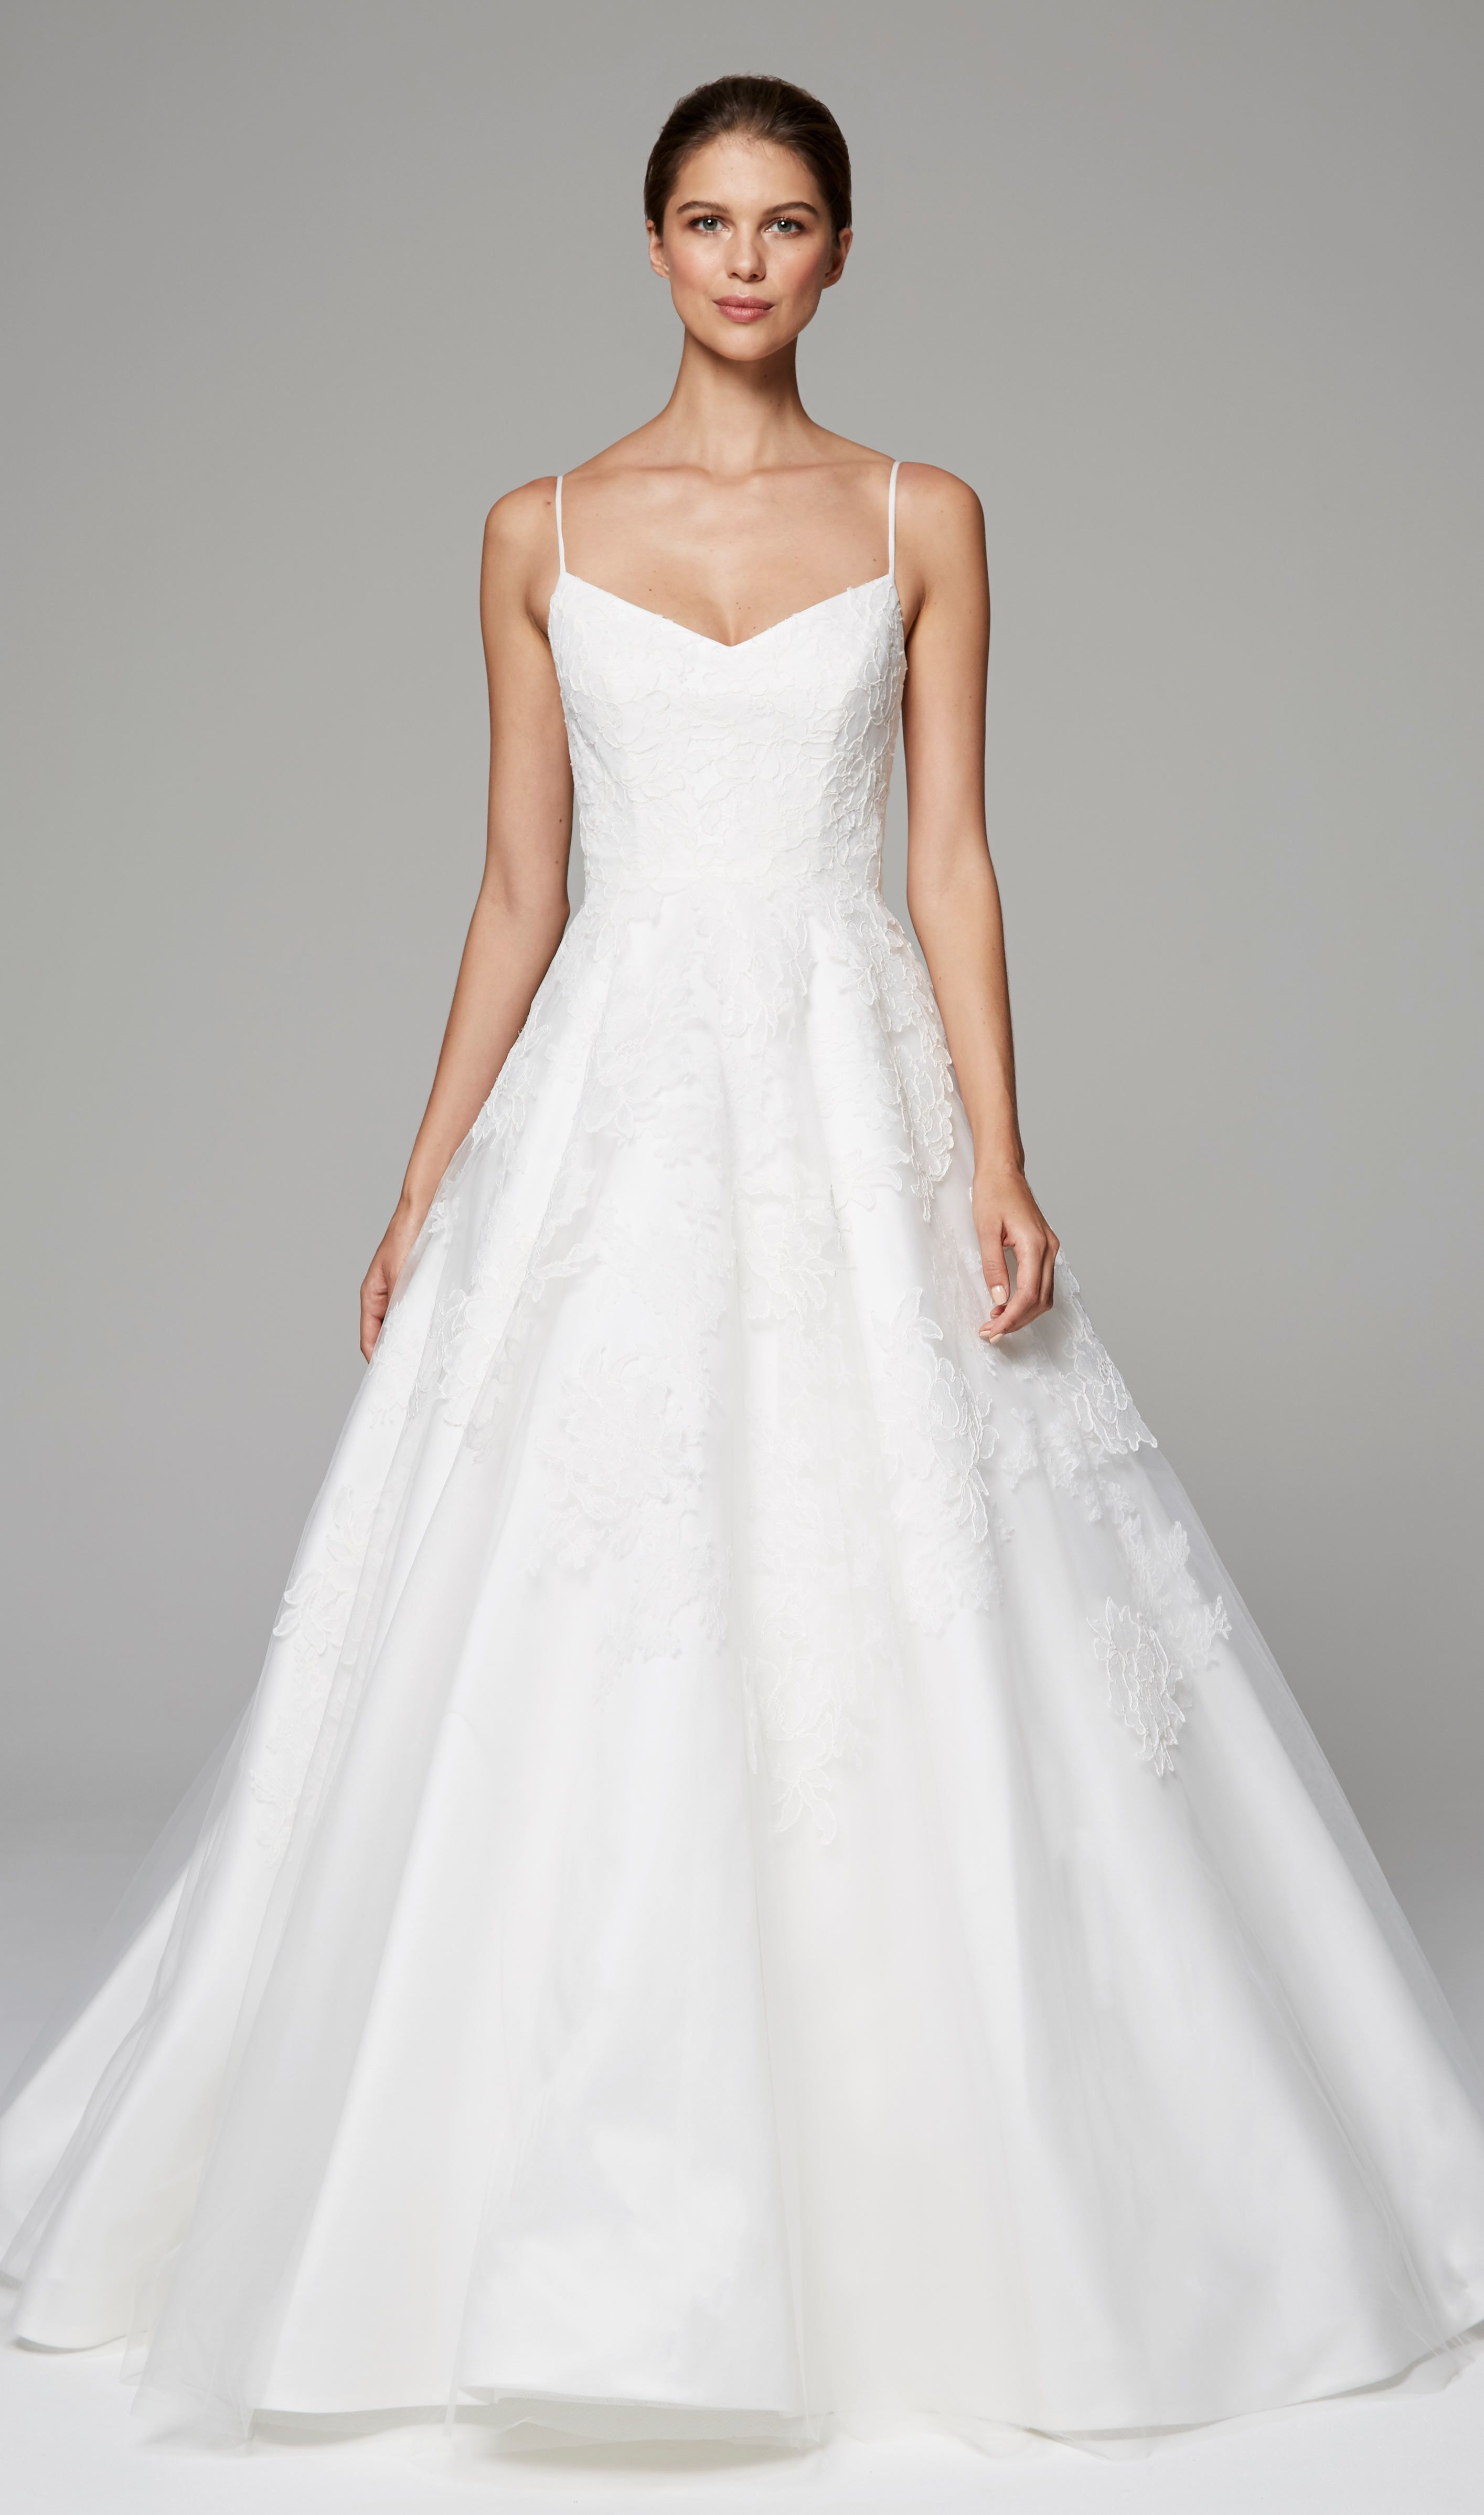 31fdd8be304c ARABELLA - Anne Barge Fall 2018 | Bridal gown with ballerina bodice of  appliqued Chantilly and Alencon laces with full skirt.